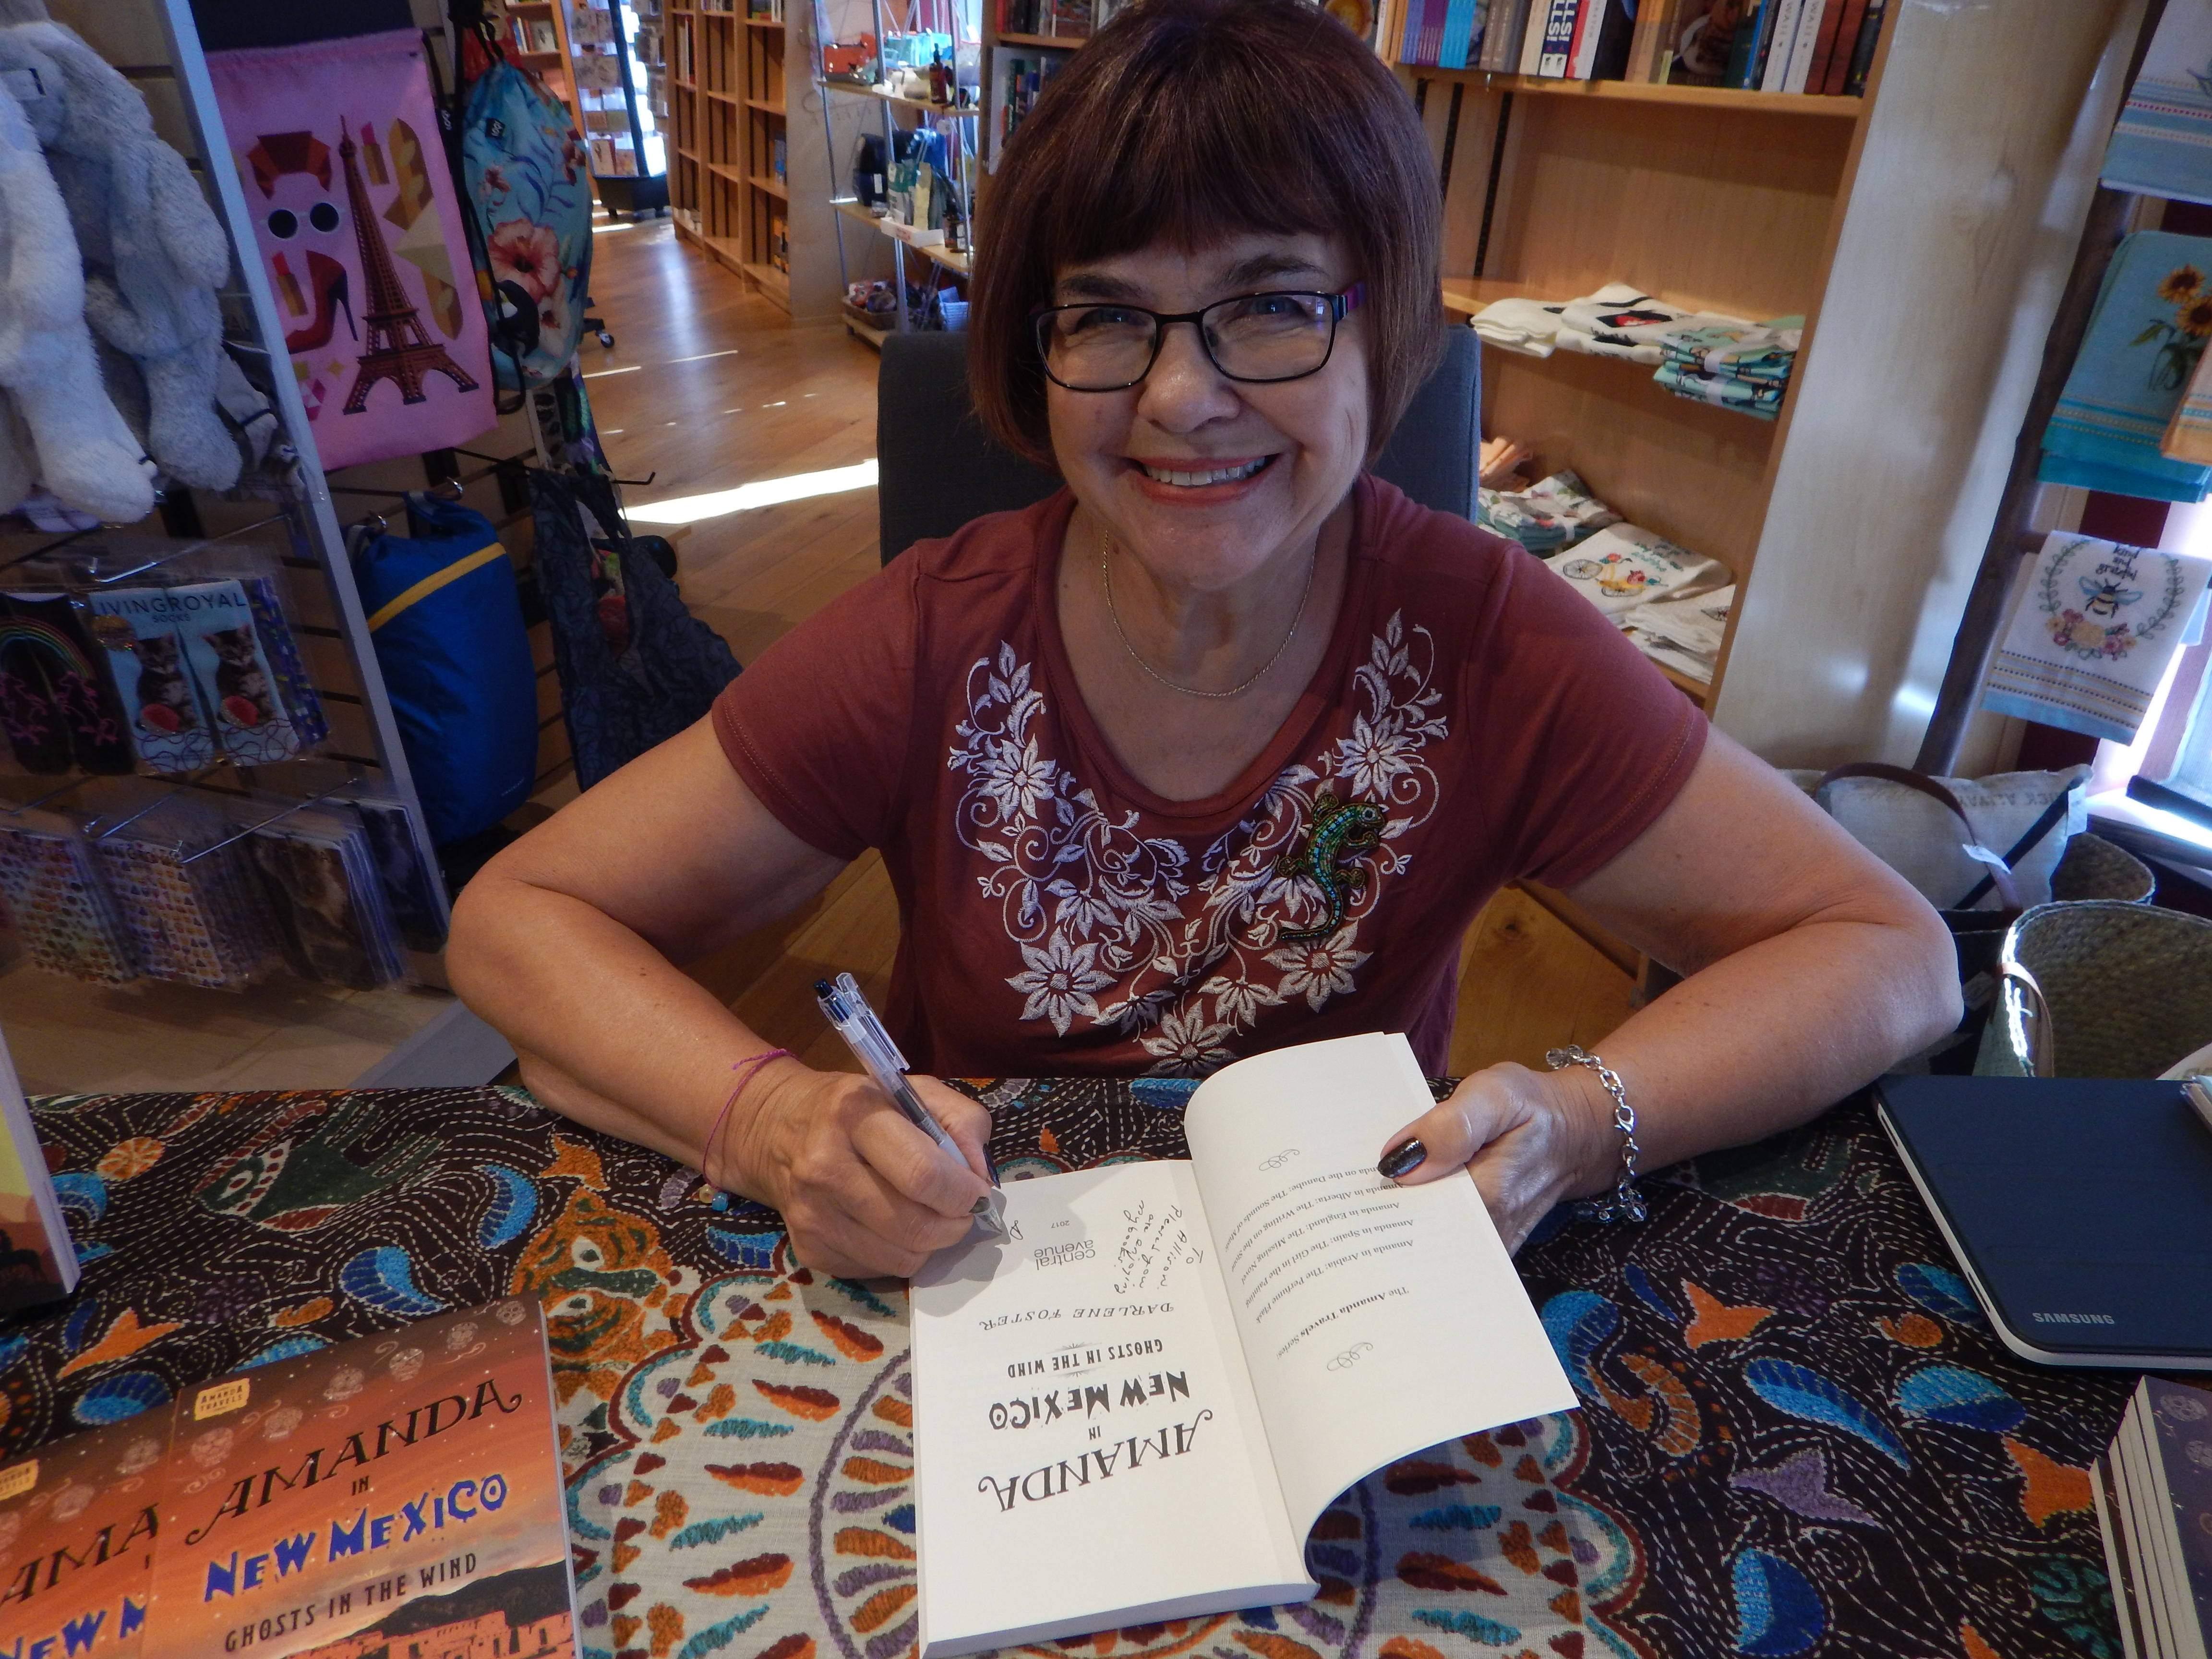 #BadMoonRising: Amanda in New Mexico – Ghosts in the Wind #childrensbooks #ghosts